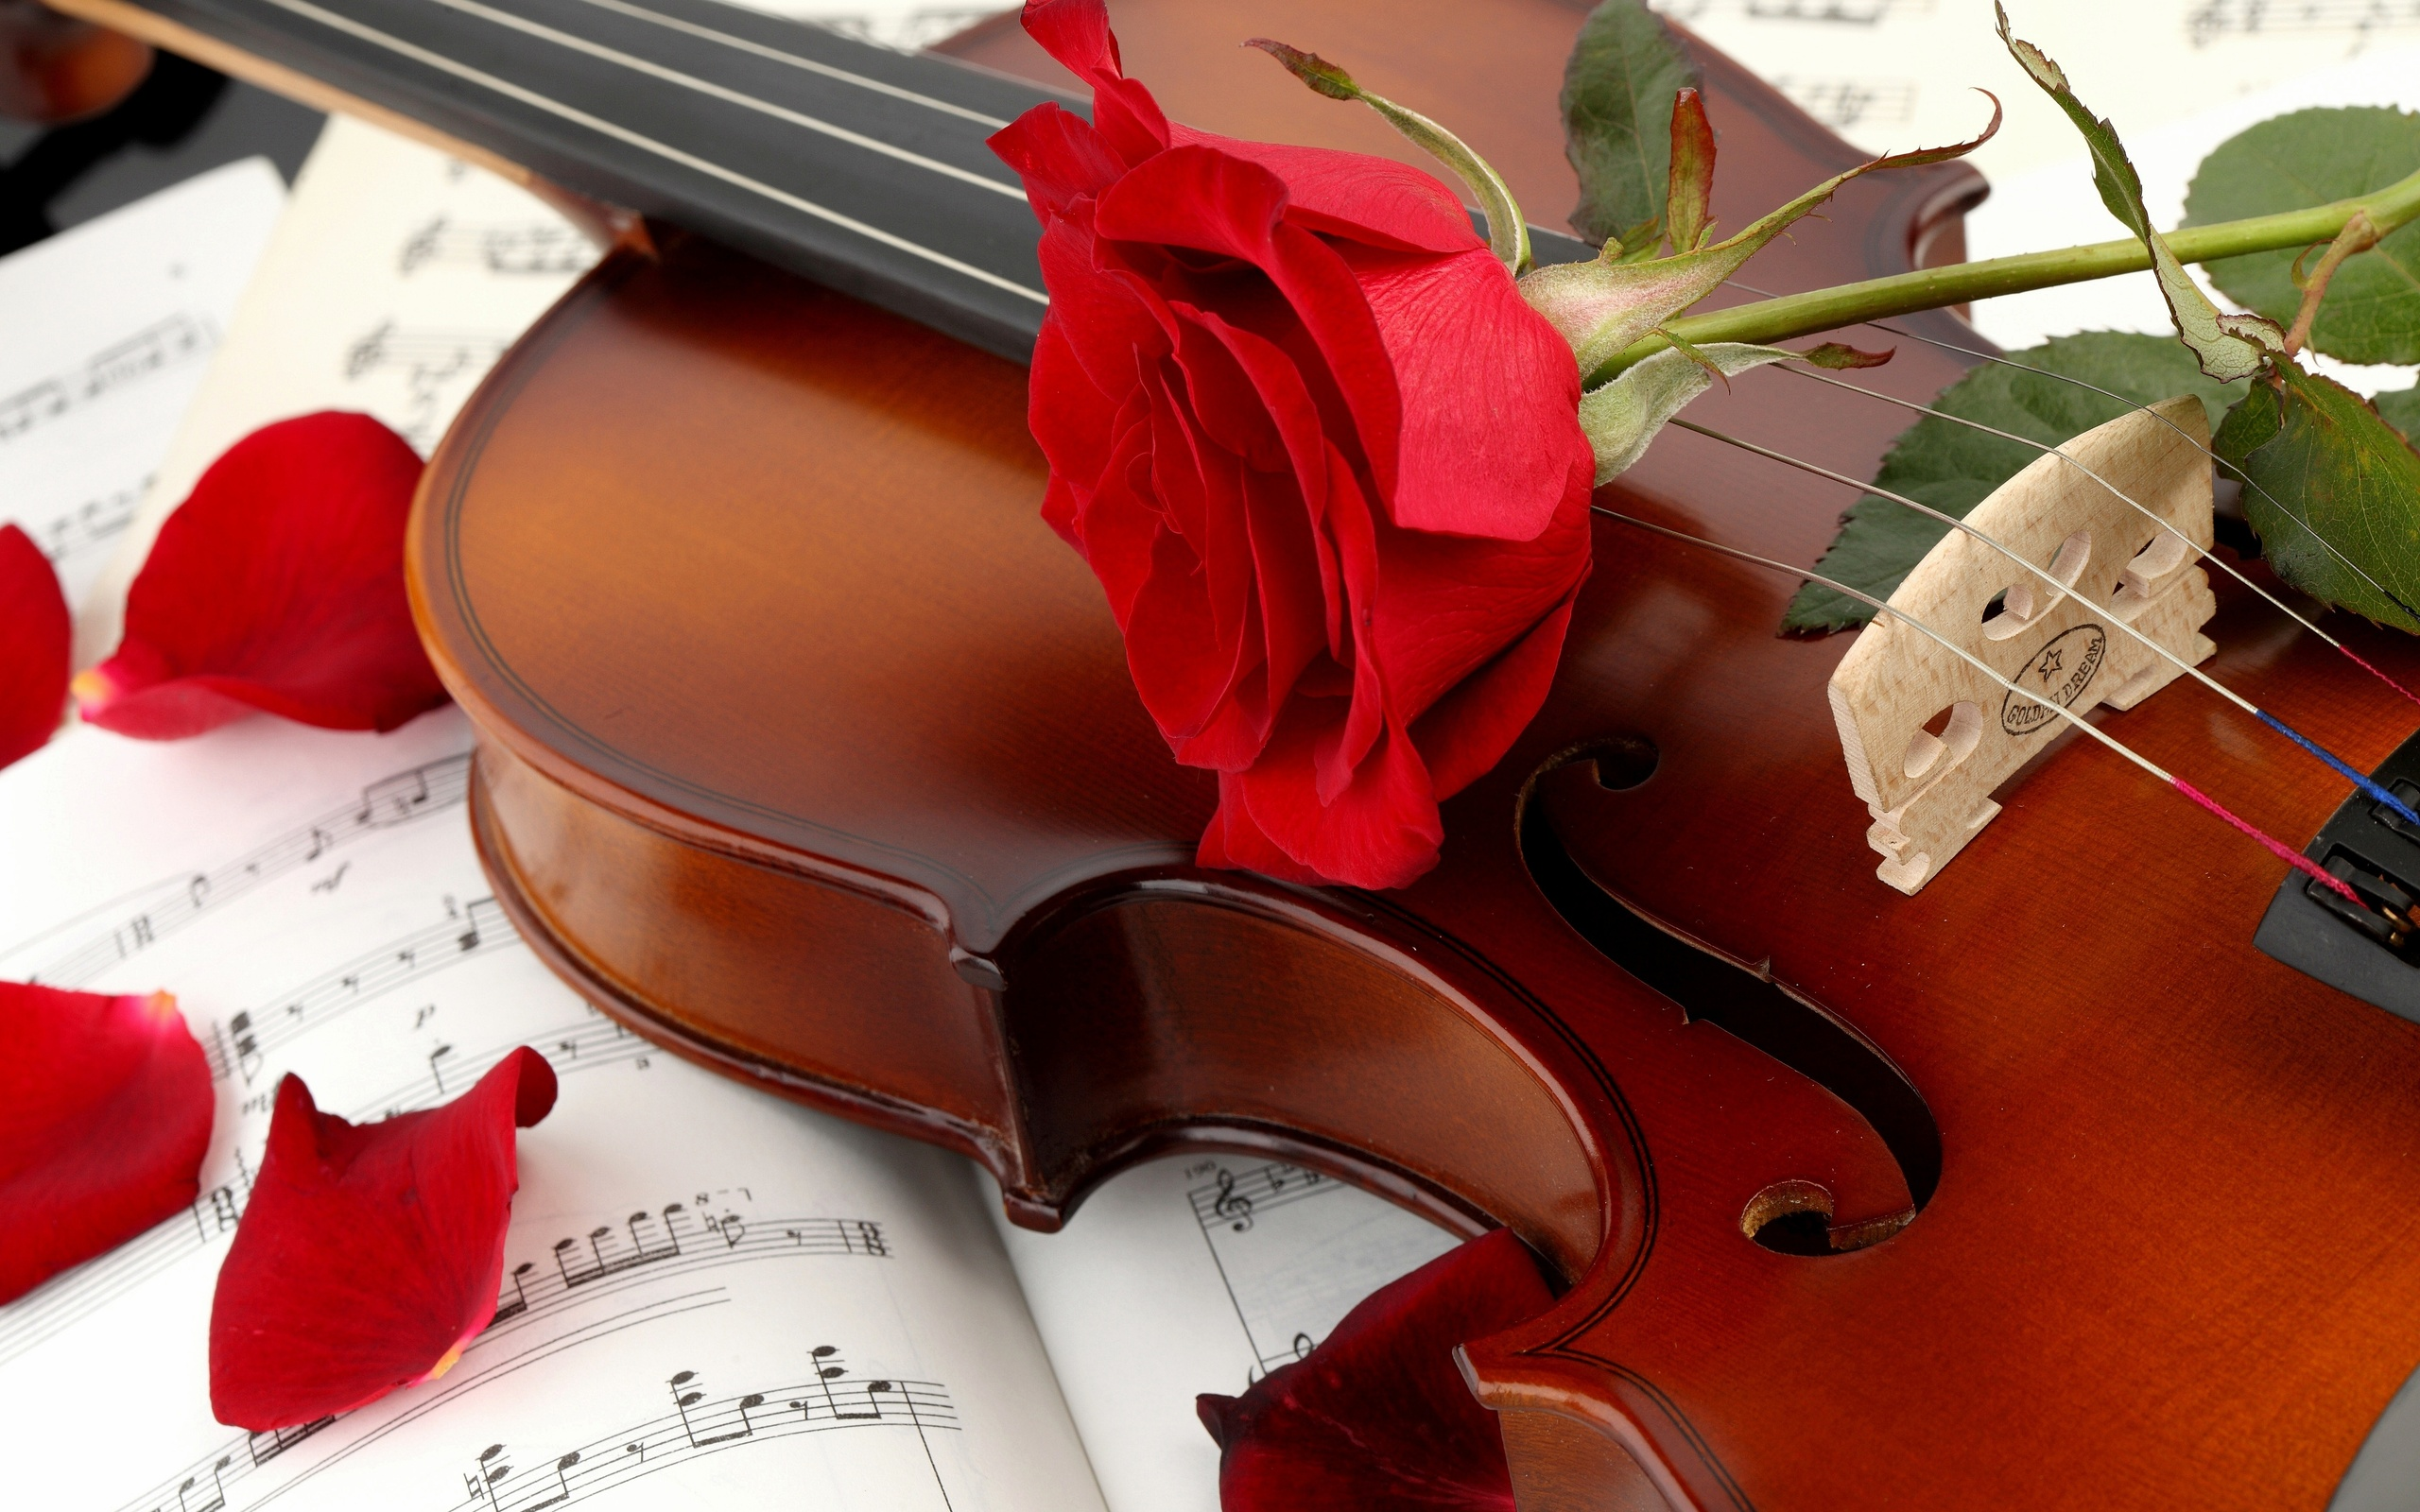 Music  flower  music note  notes  petals  red  Rose HD Wallpaper